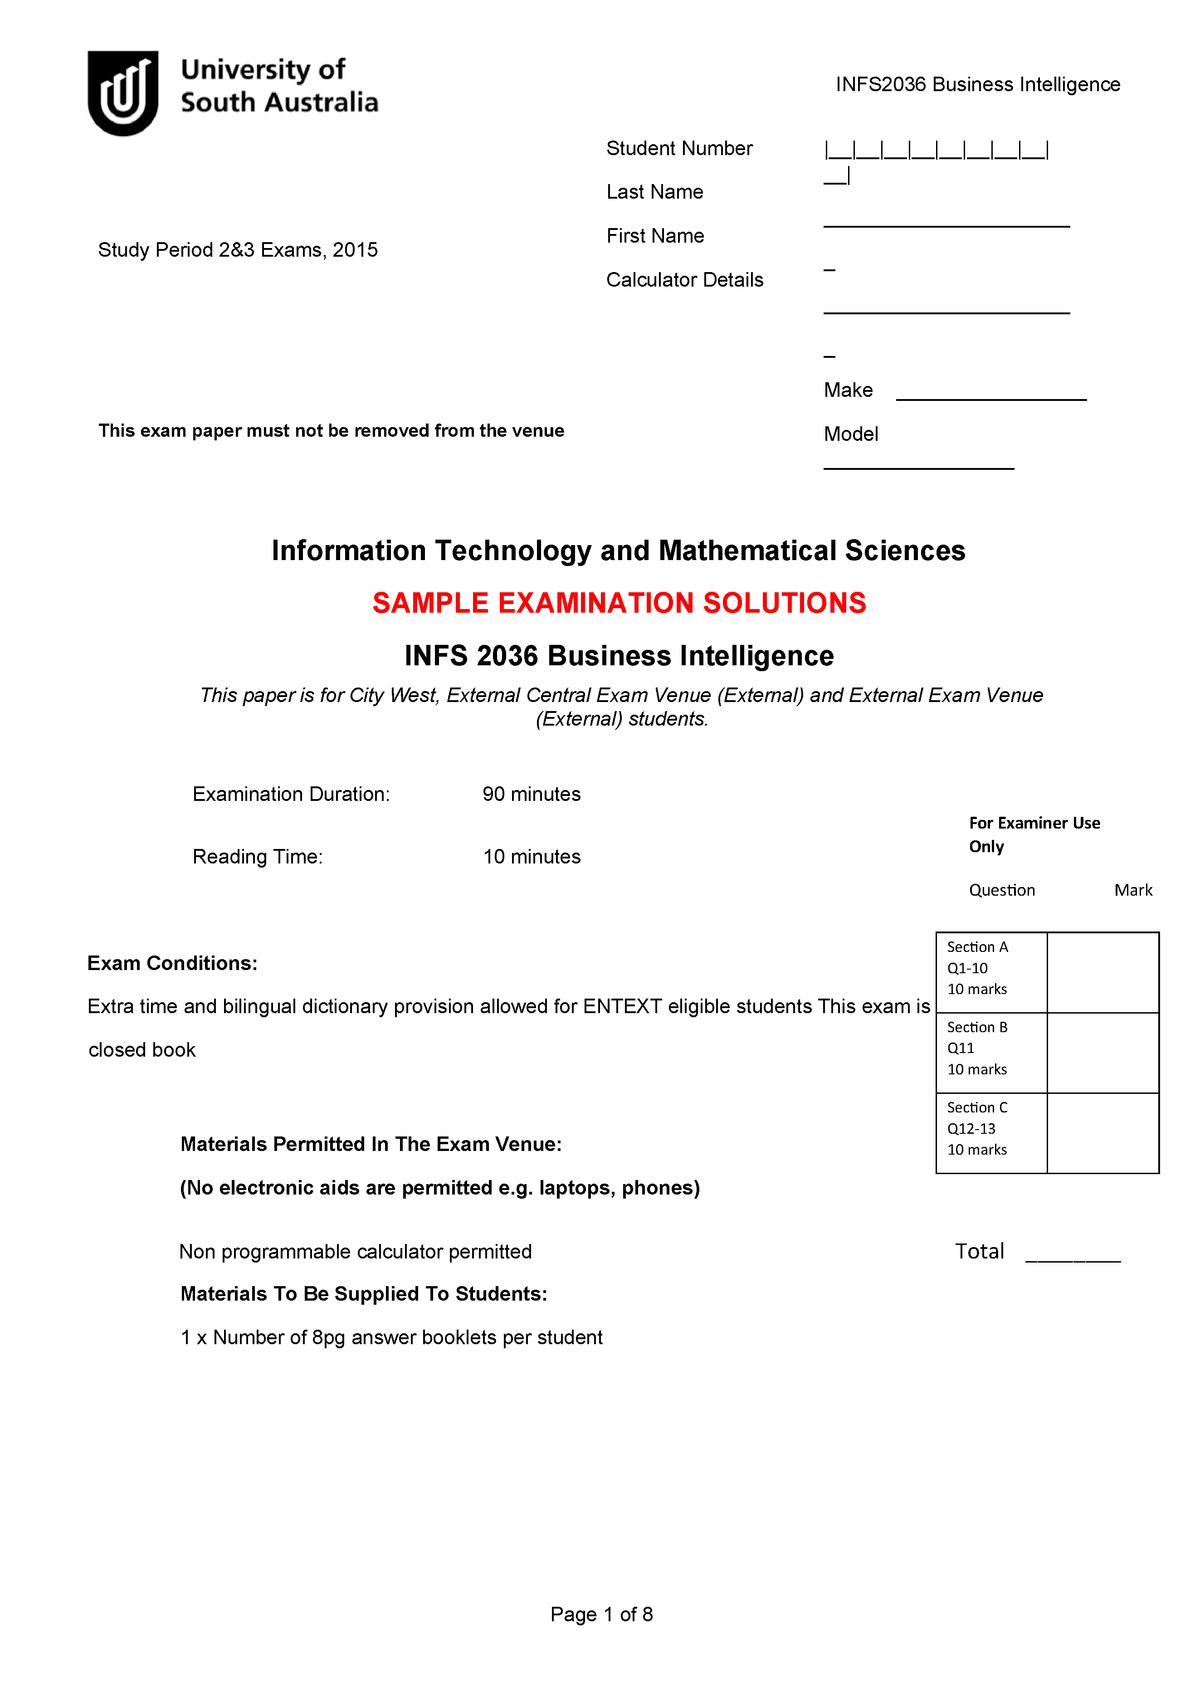 Sample/practice exam 2015, questions and answers - Business